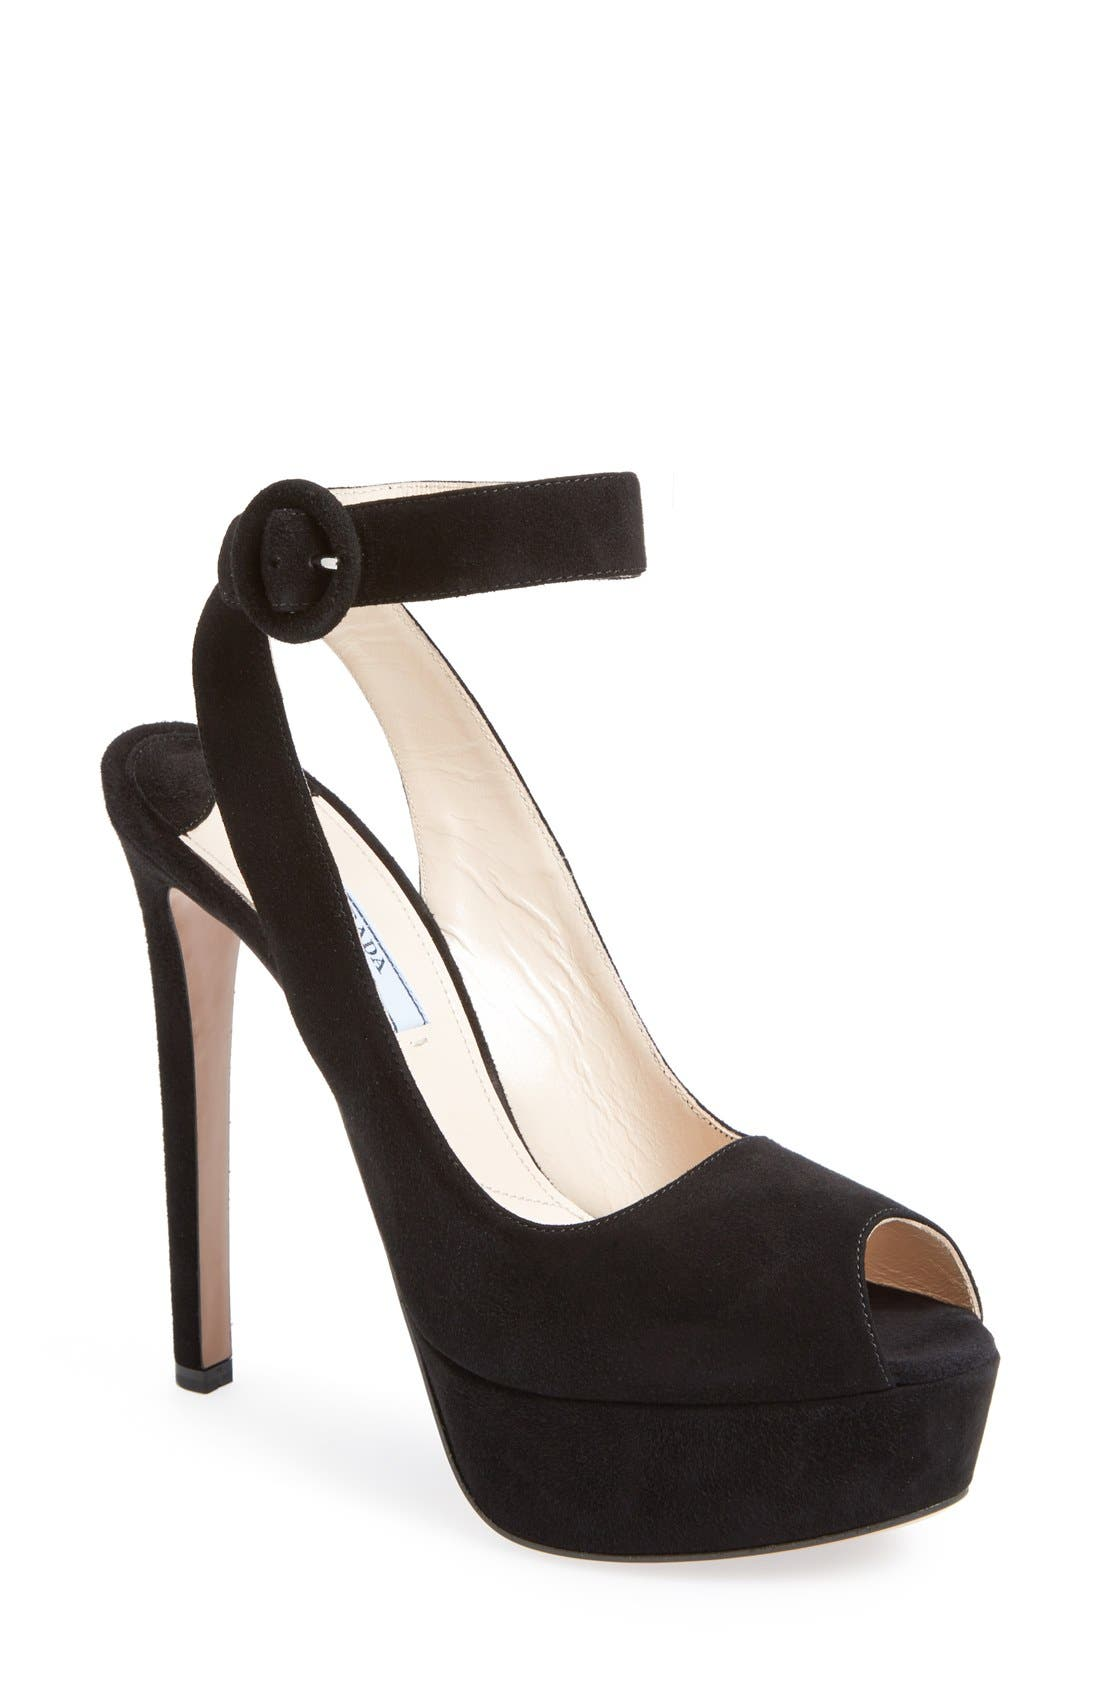 Alternate Image 1 Selected - Prada Ankle Strap Suede Platform Sandal (Women)